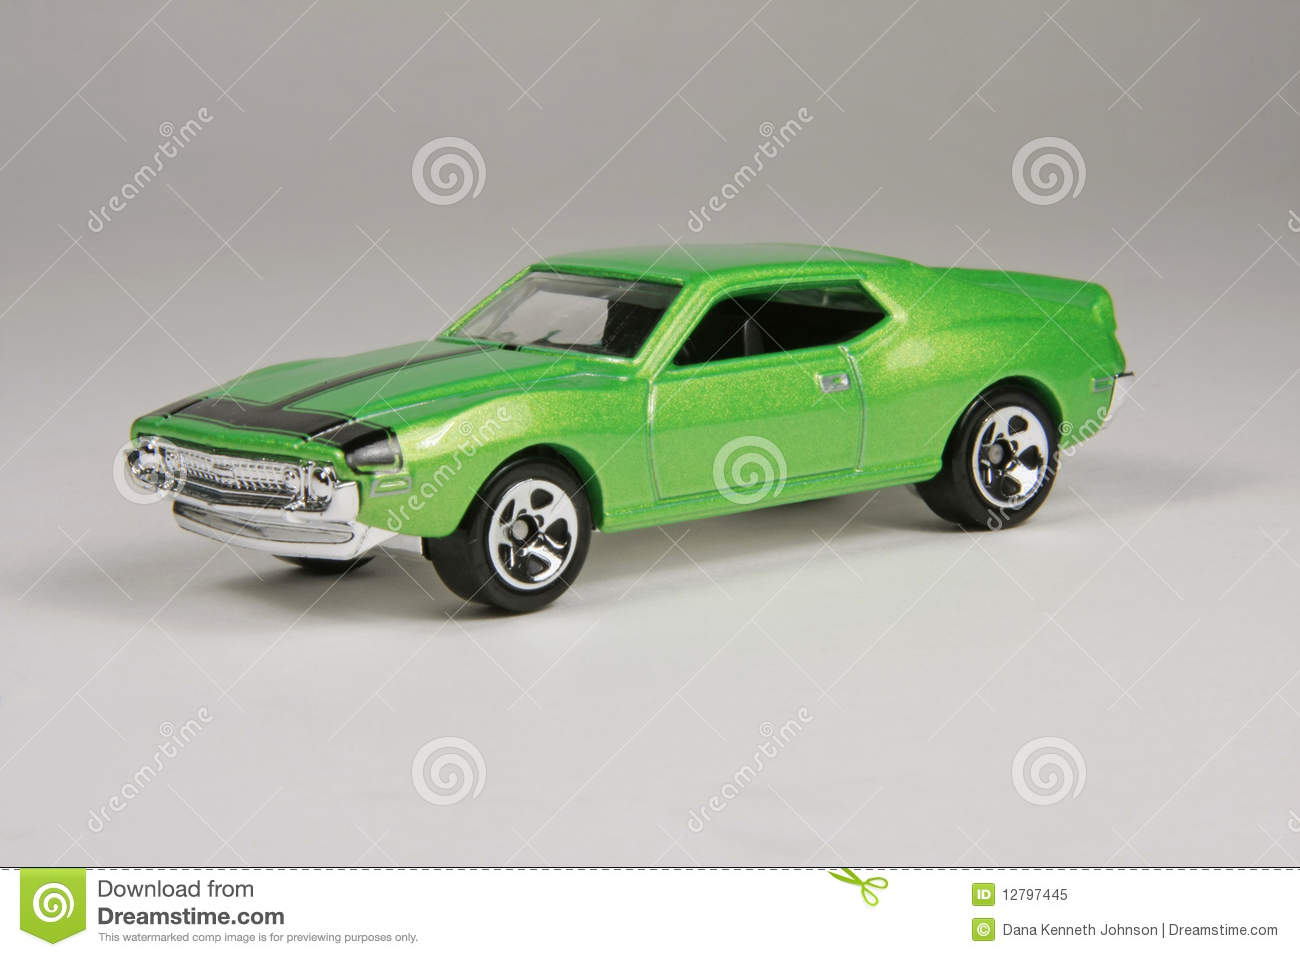 American Motors Javelin AMX Stock Image - Image of wheels, sports